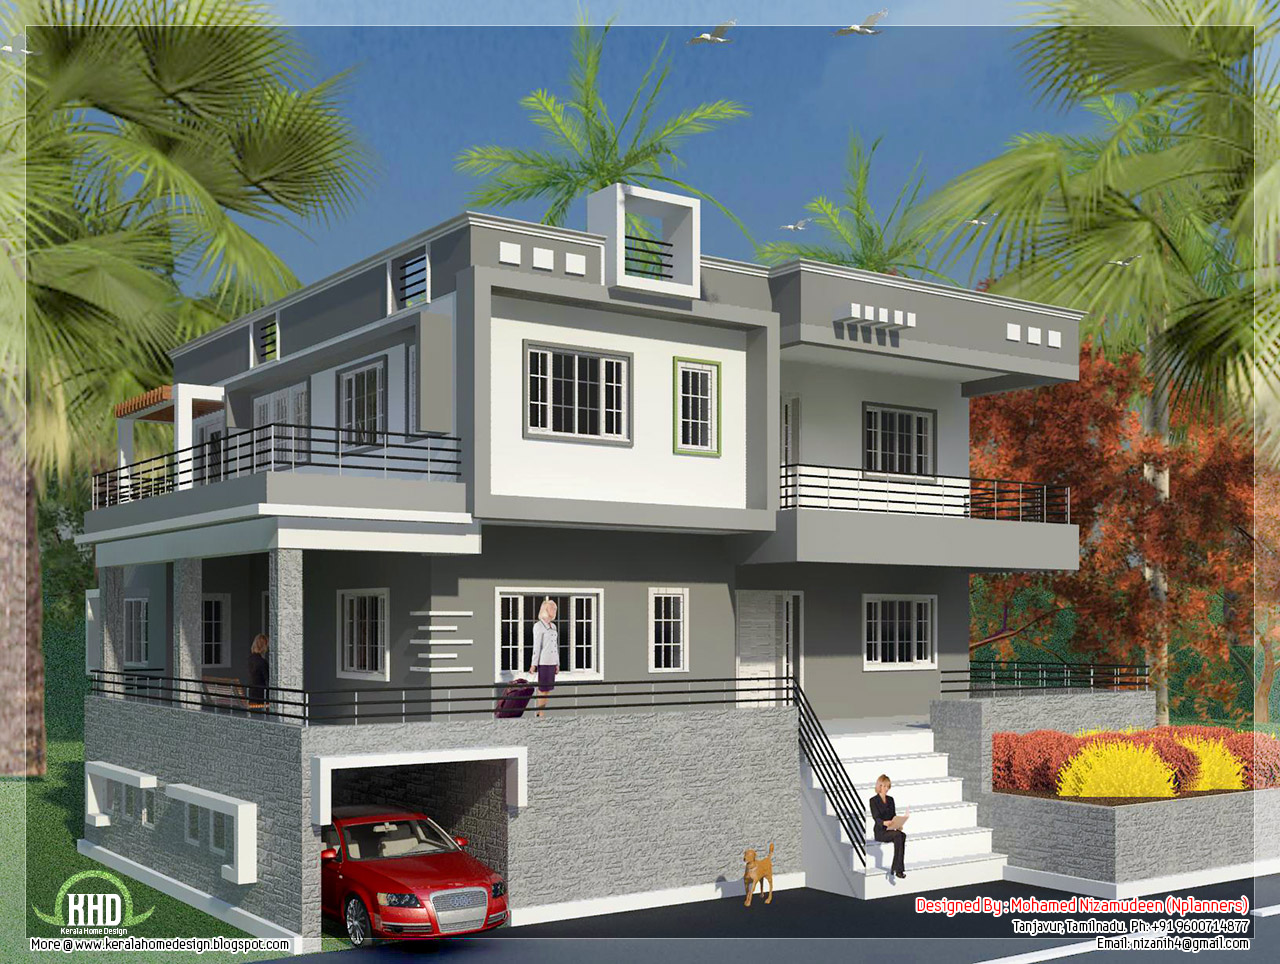 North indian style minimalist house exterior design for Indian home design photos exterior